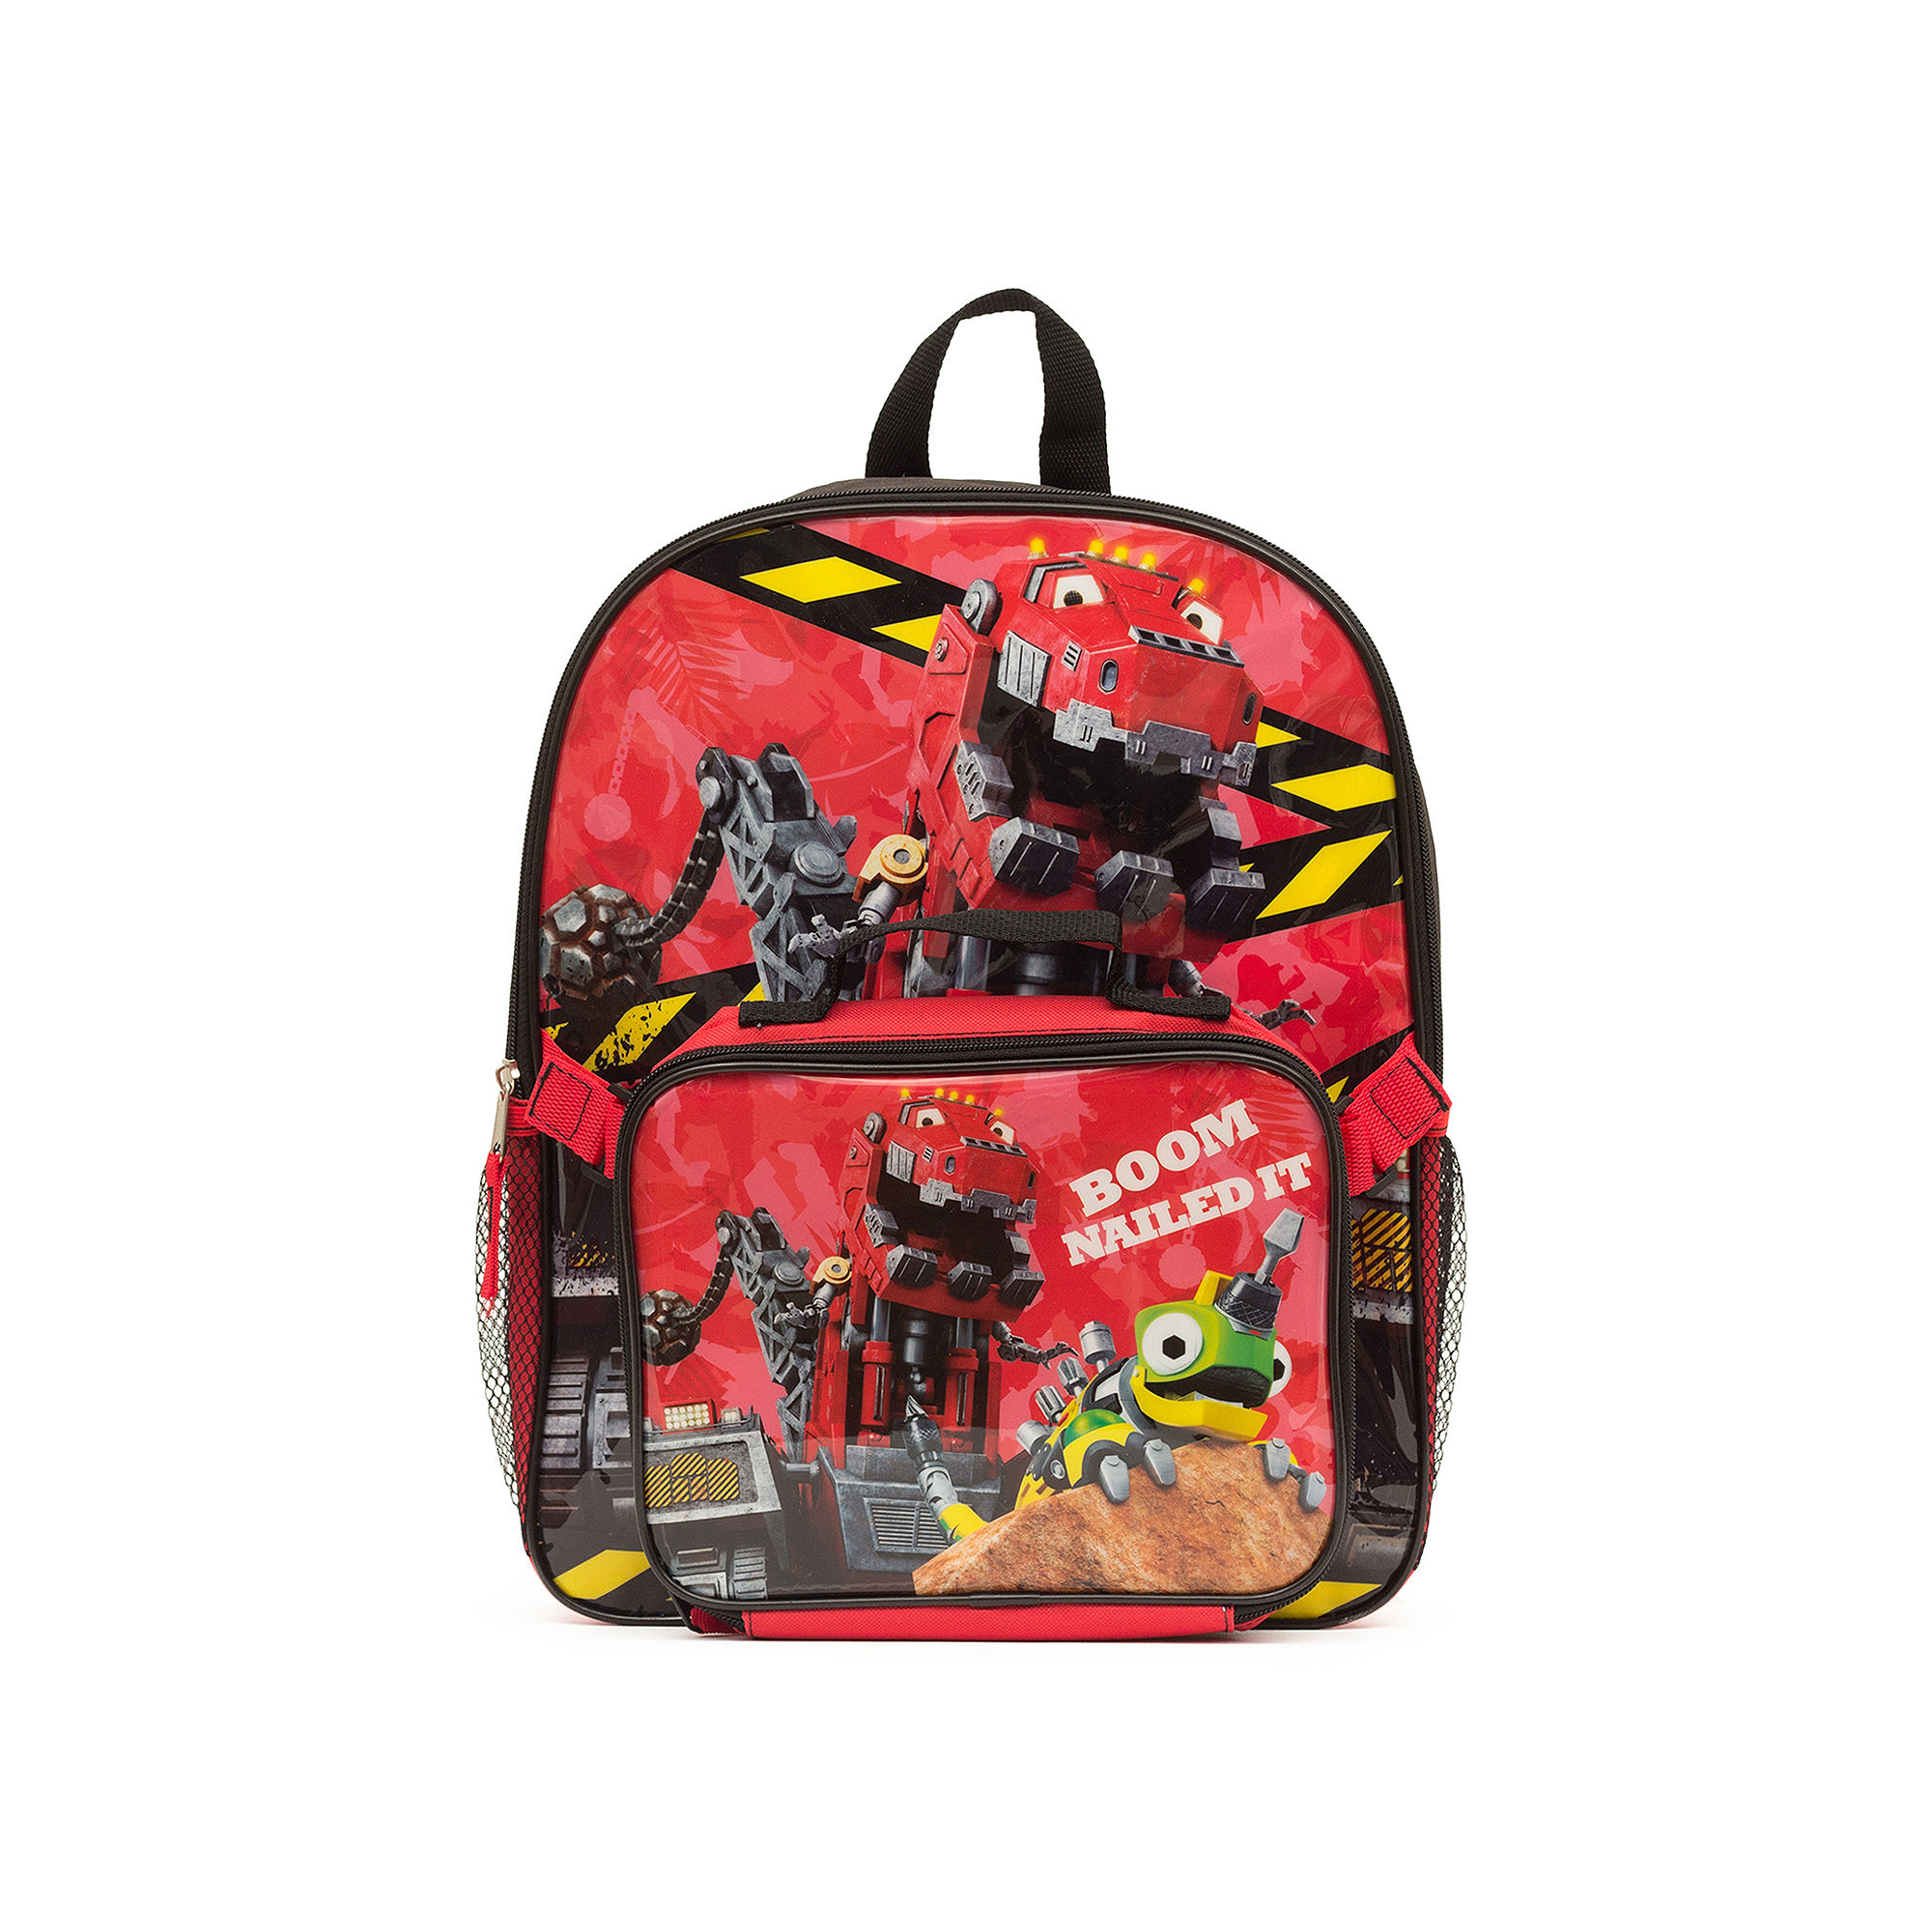 """DinoTrux """"Boom Nailed It!"""" Boys' Backpack with Lunch Kit"""